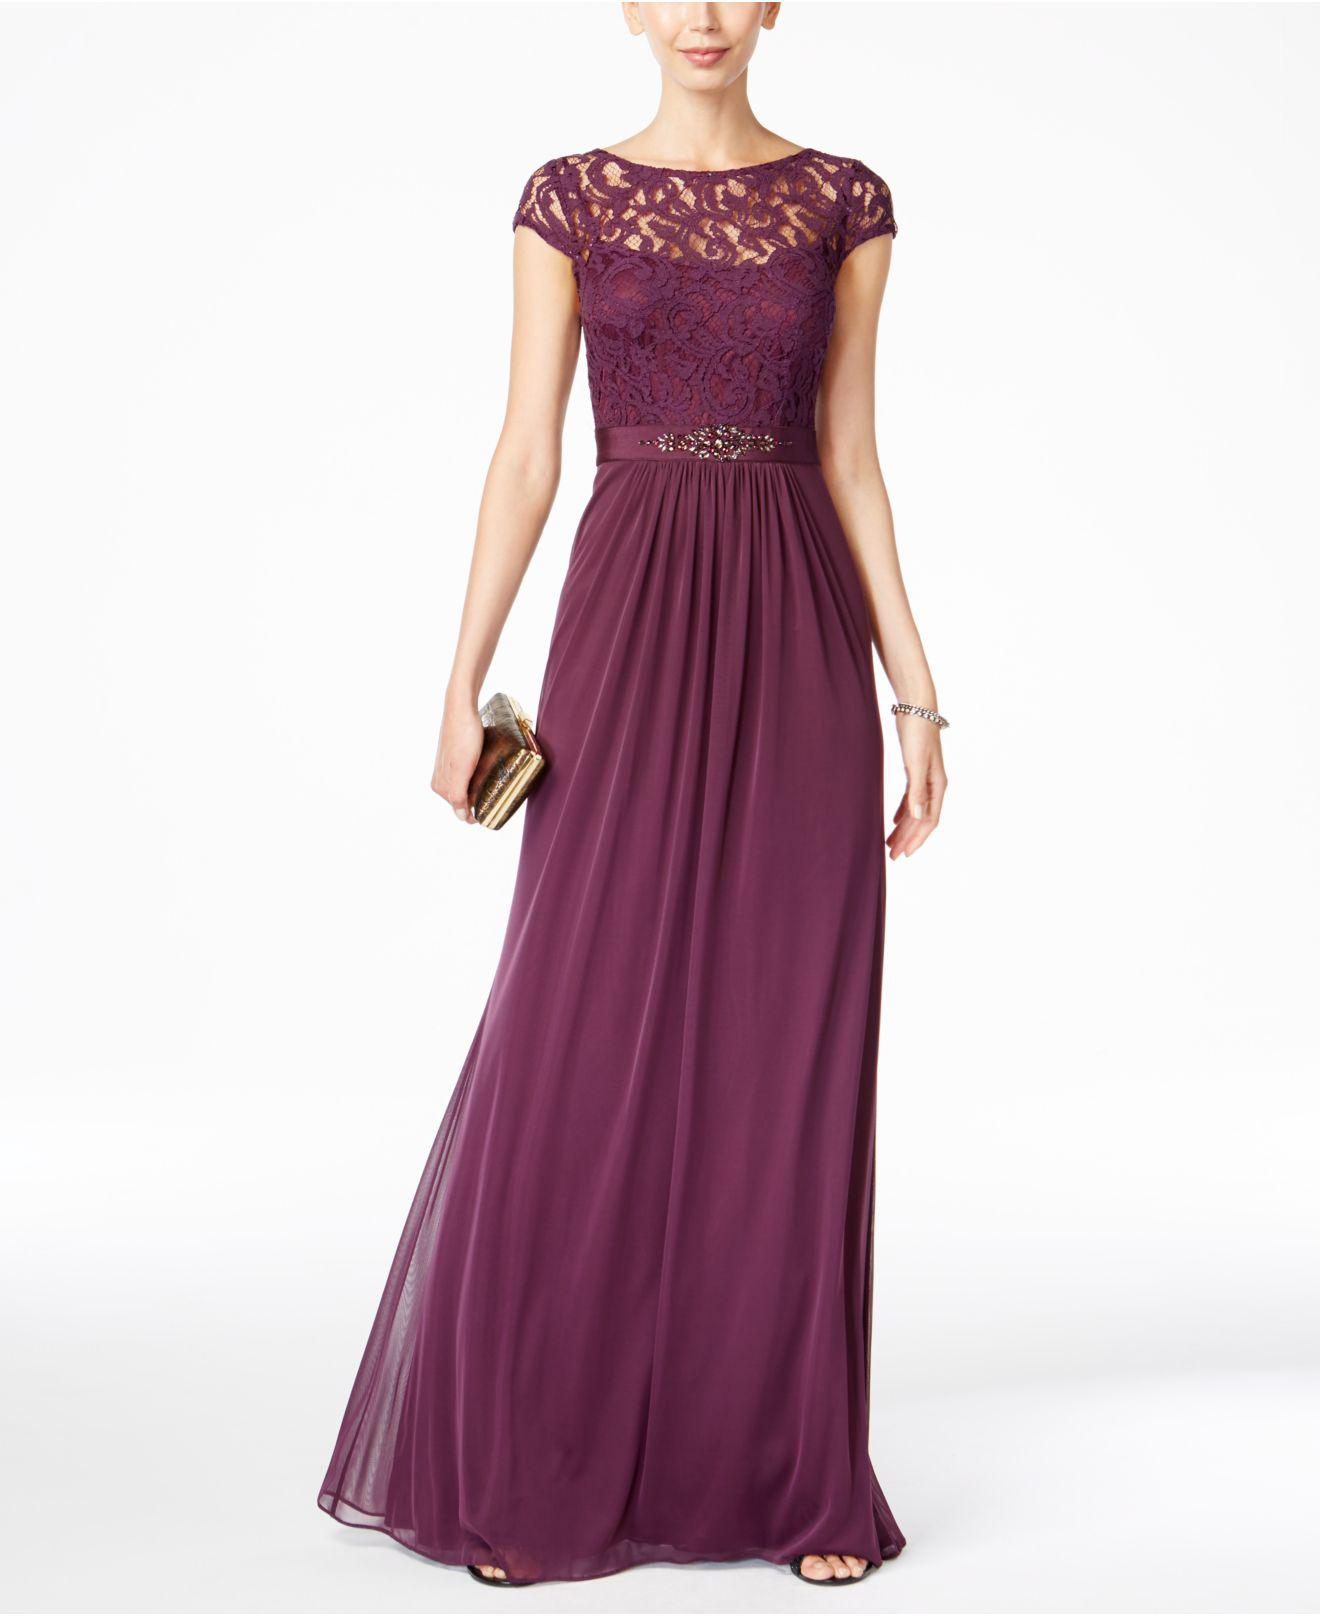 0c69c1528f2b7 Lyst - Adrianna Papell Cap-sleeve Lace Gown in Purple